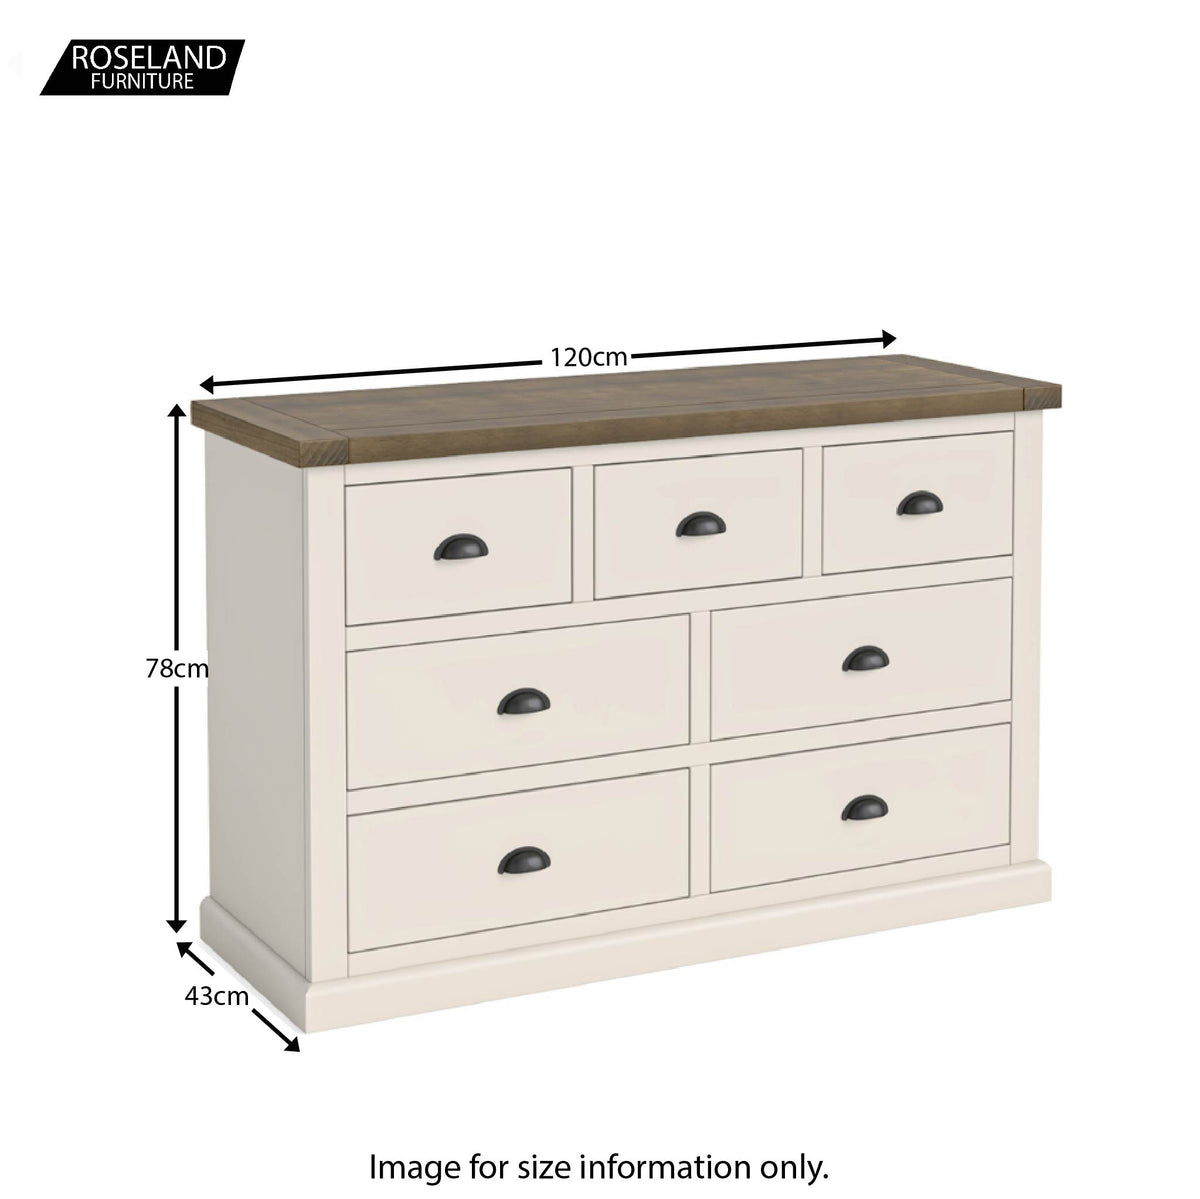 Dimensions - Hove Ivory 3 Over 4 Chest of Drawers